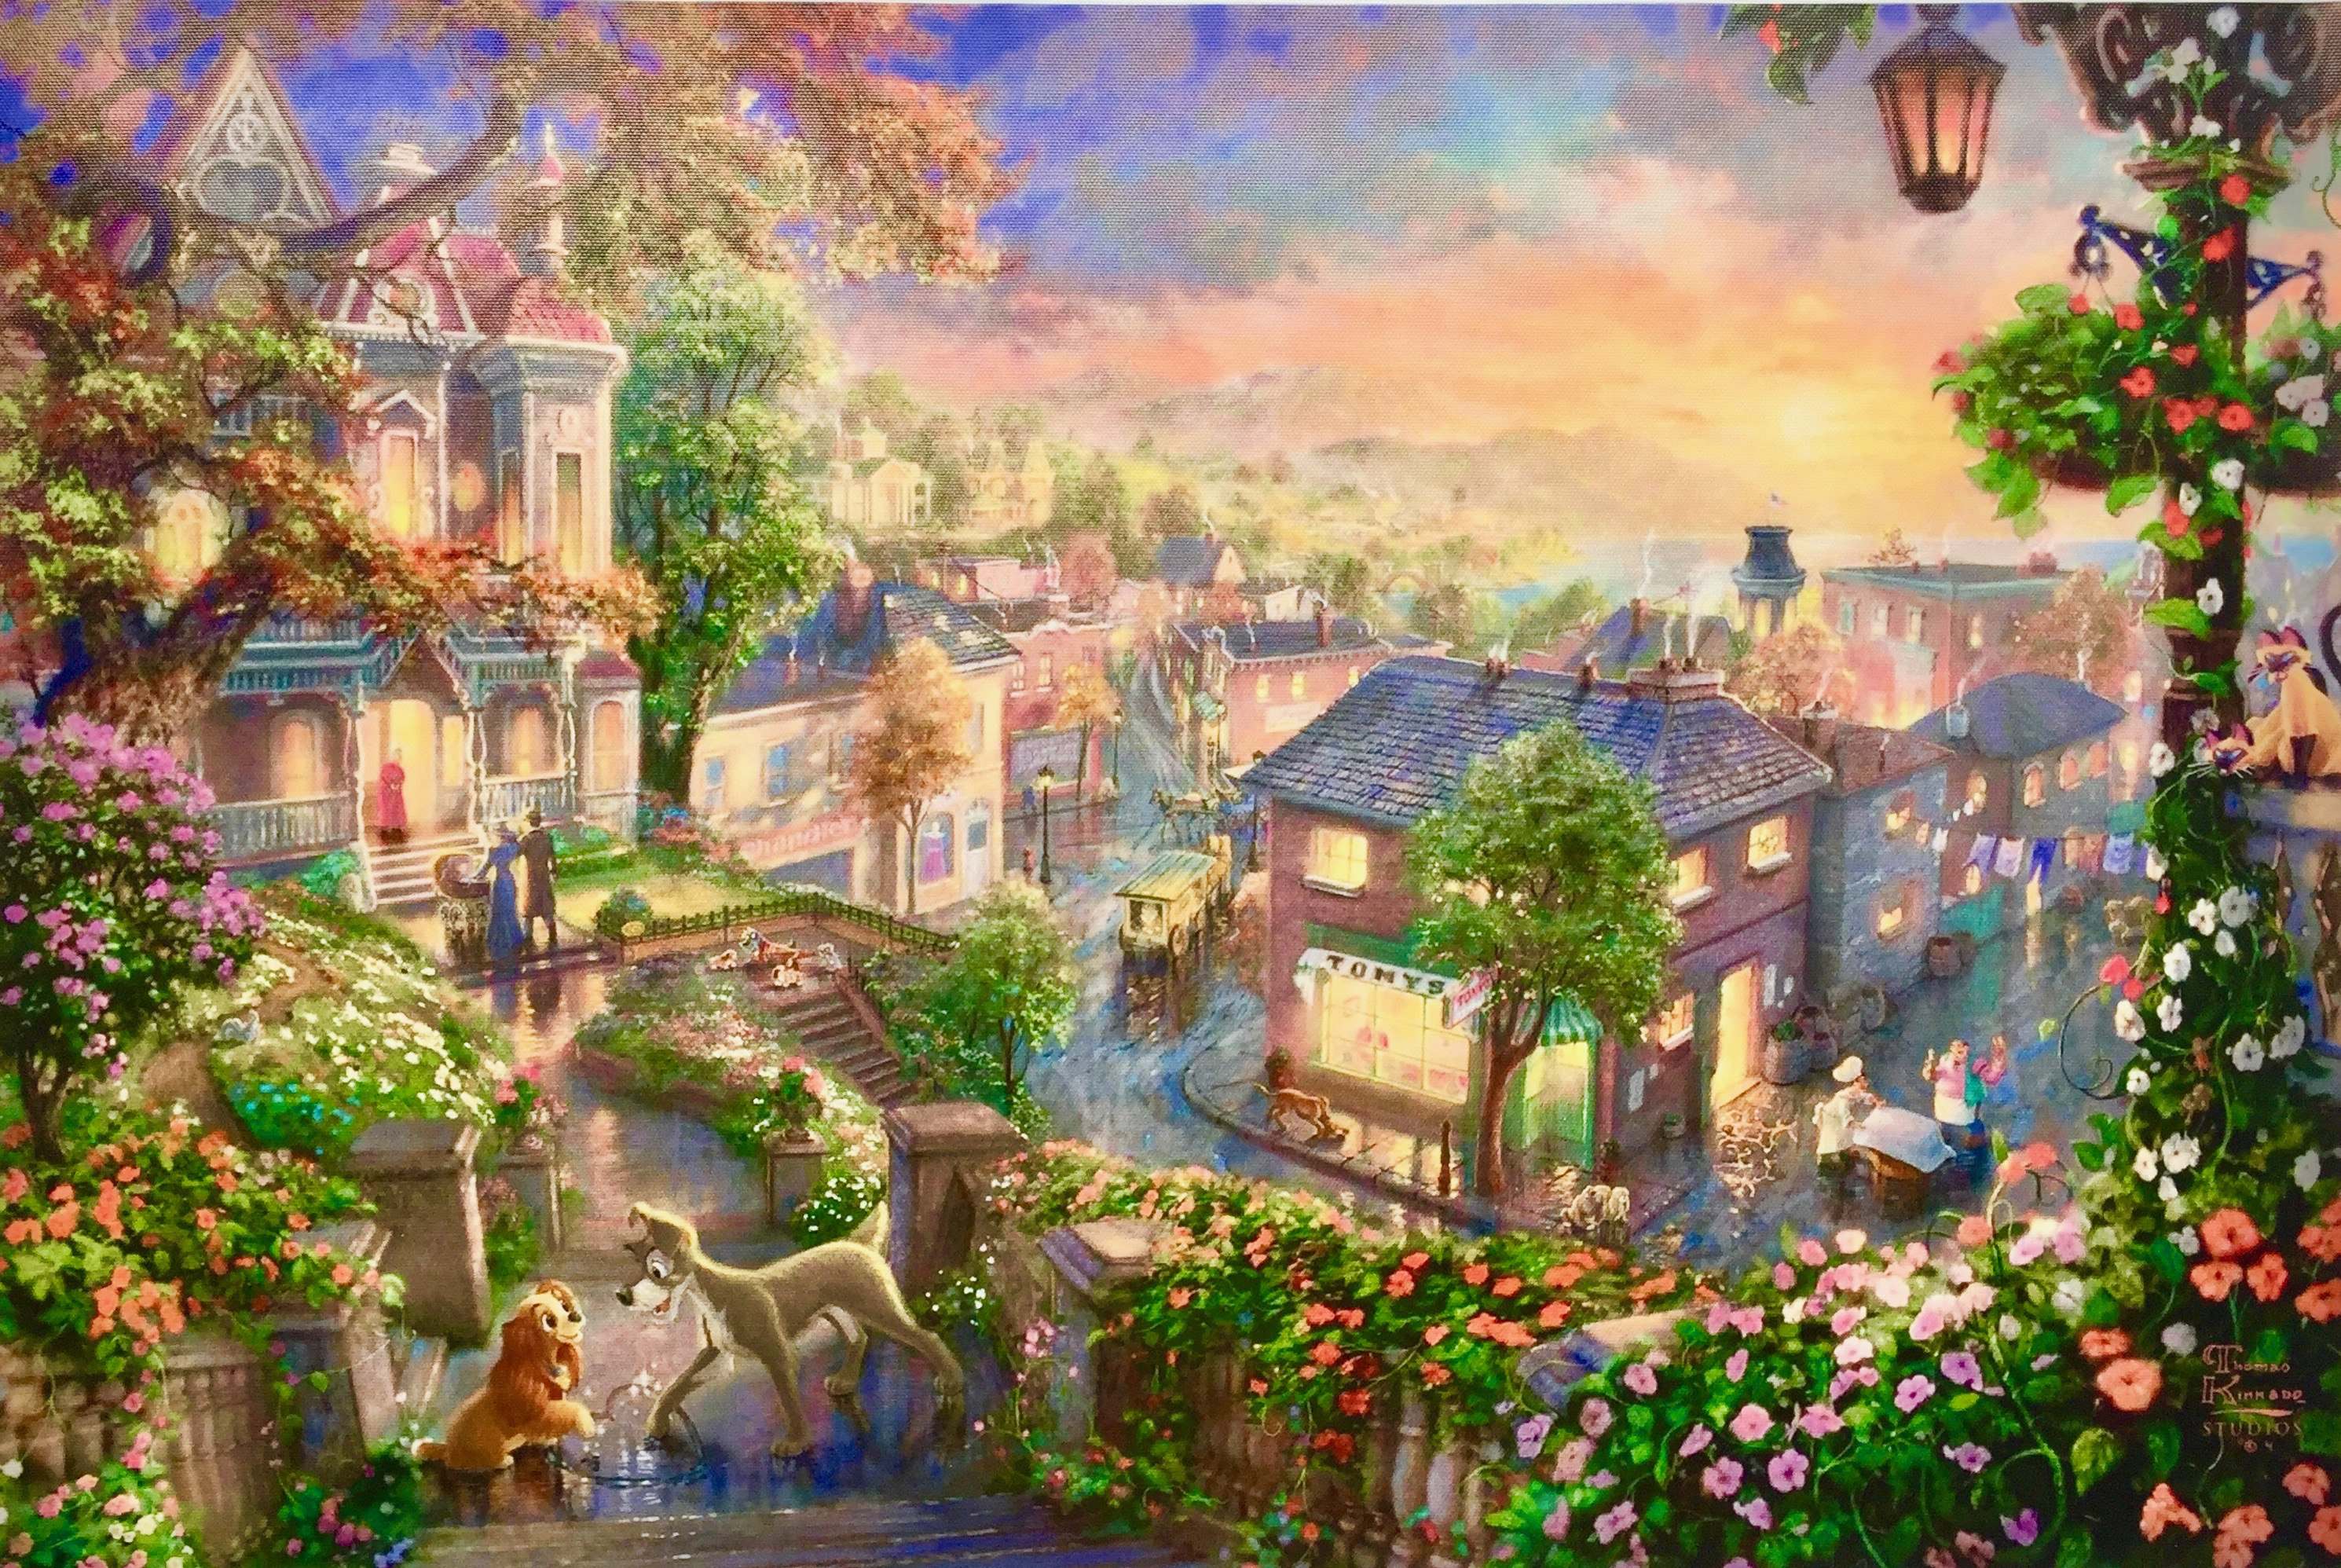 THOMAS KINKADE Lady and the Tramp Plate Signed Giclee on Canvas